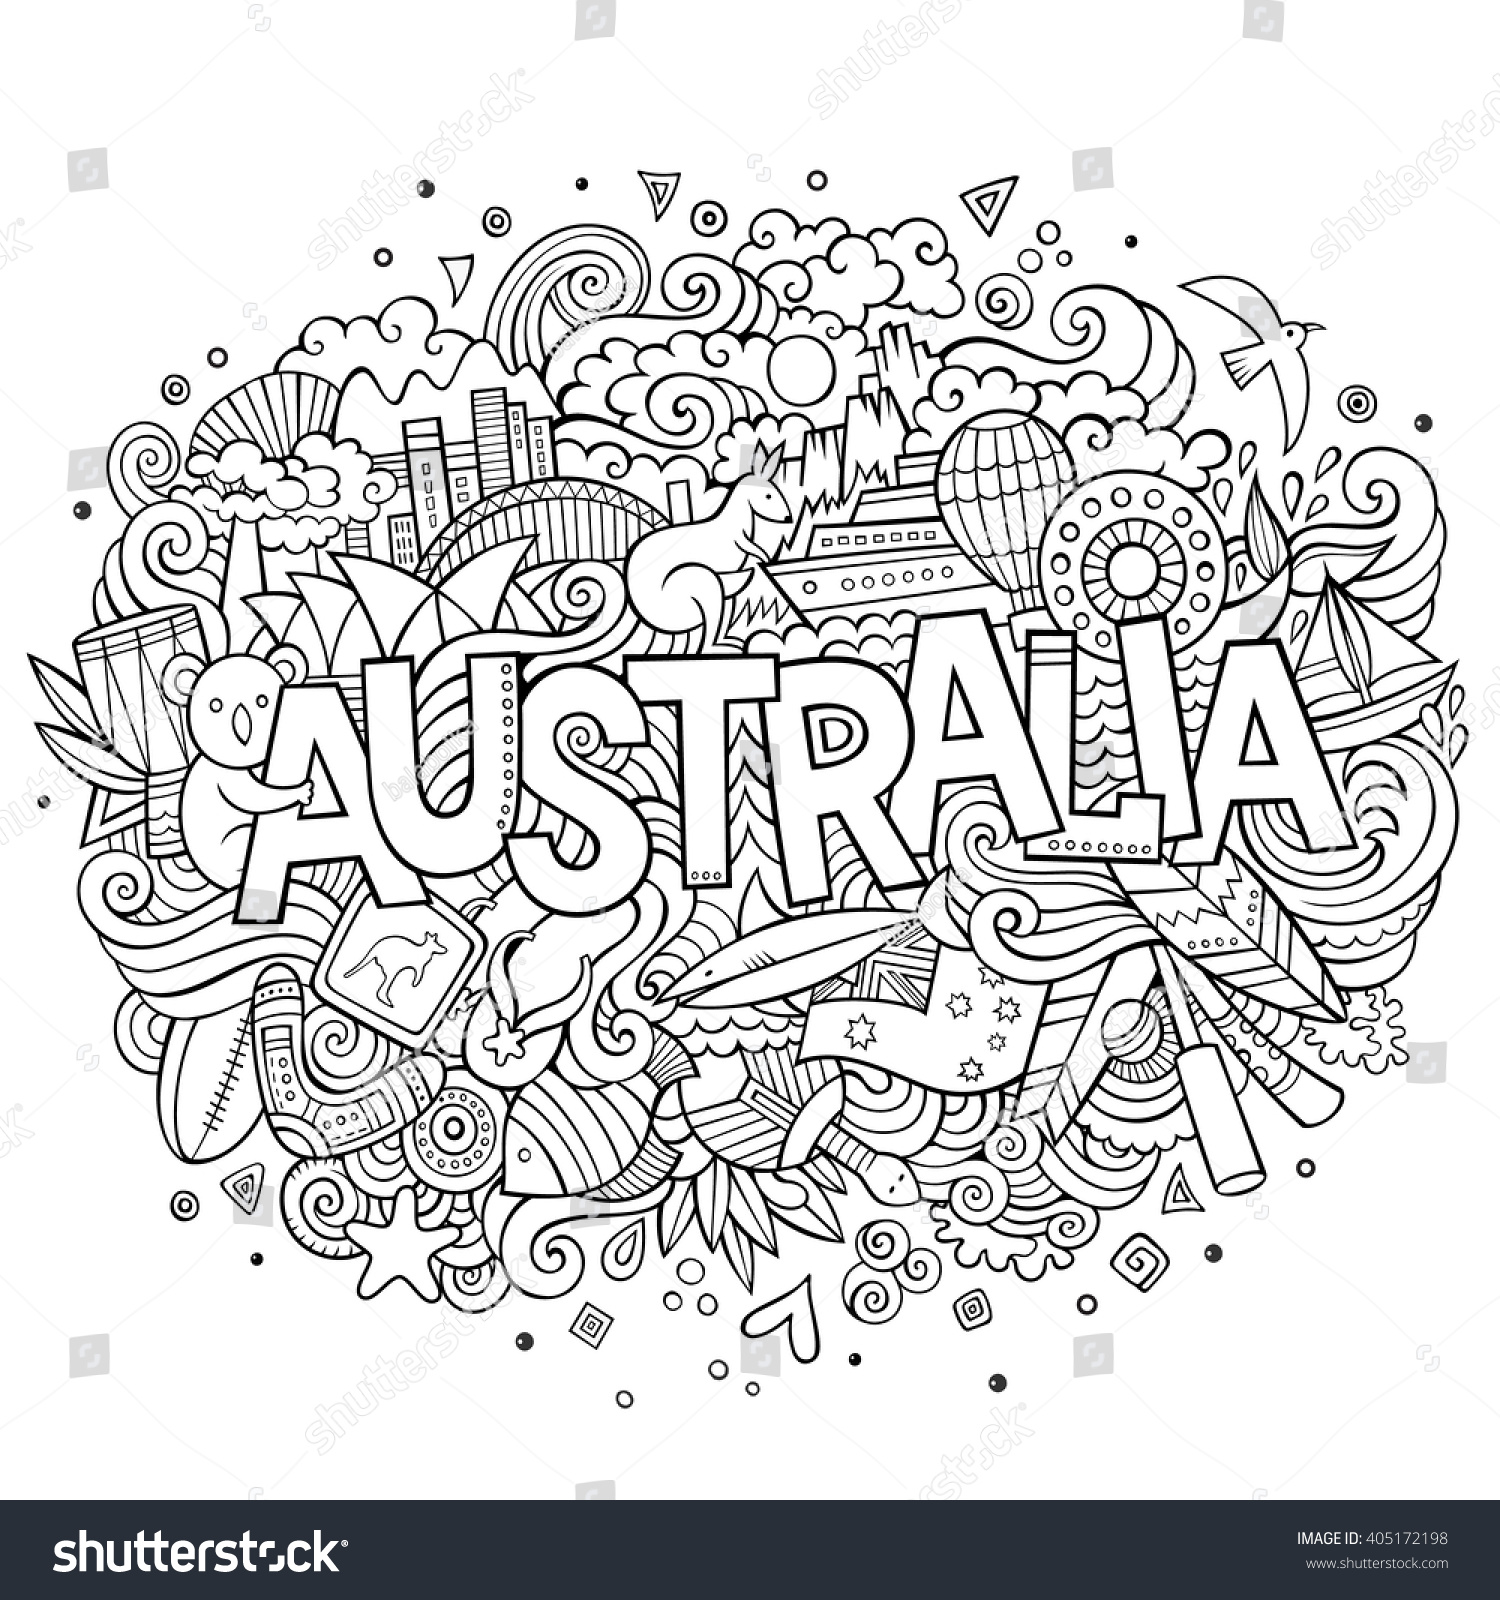 Stock vector music hand lettering and doodles elements - Australia Country Hand Lettering And Doodles Elements And Symbols Background Vector Hand Drawn Sketchy Illustration